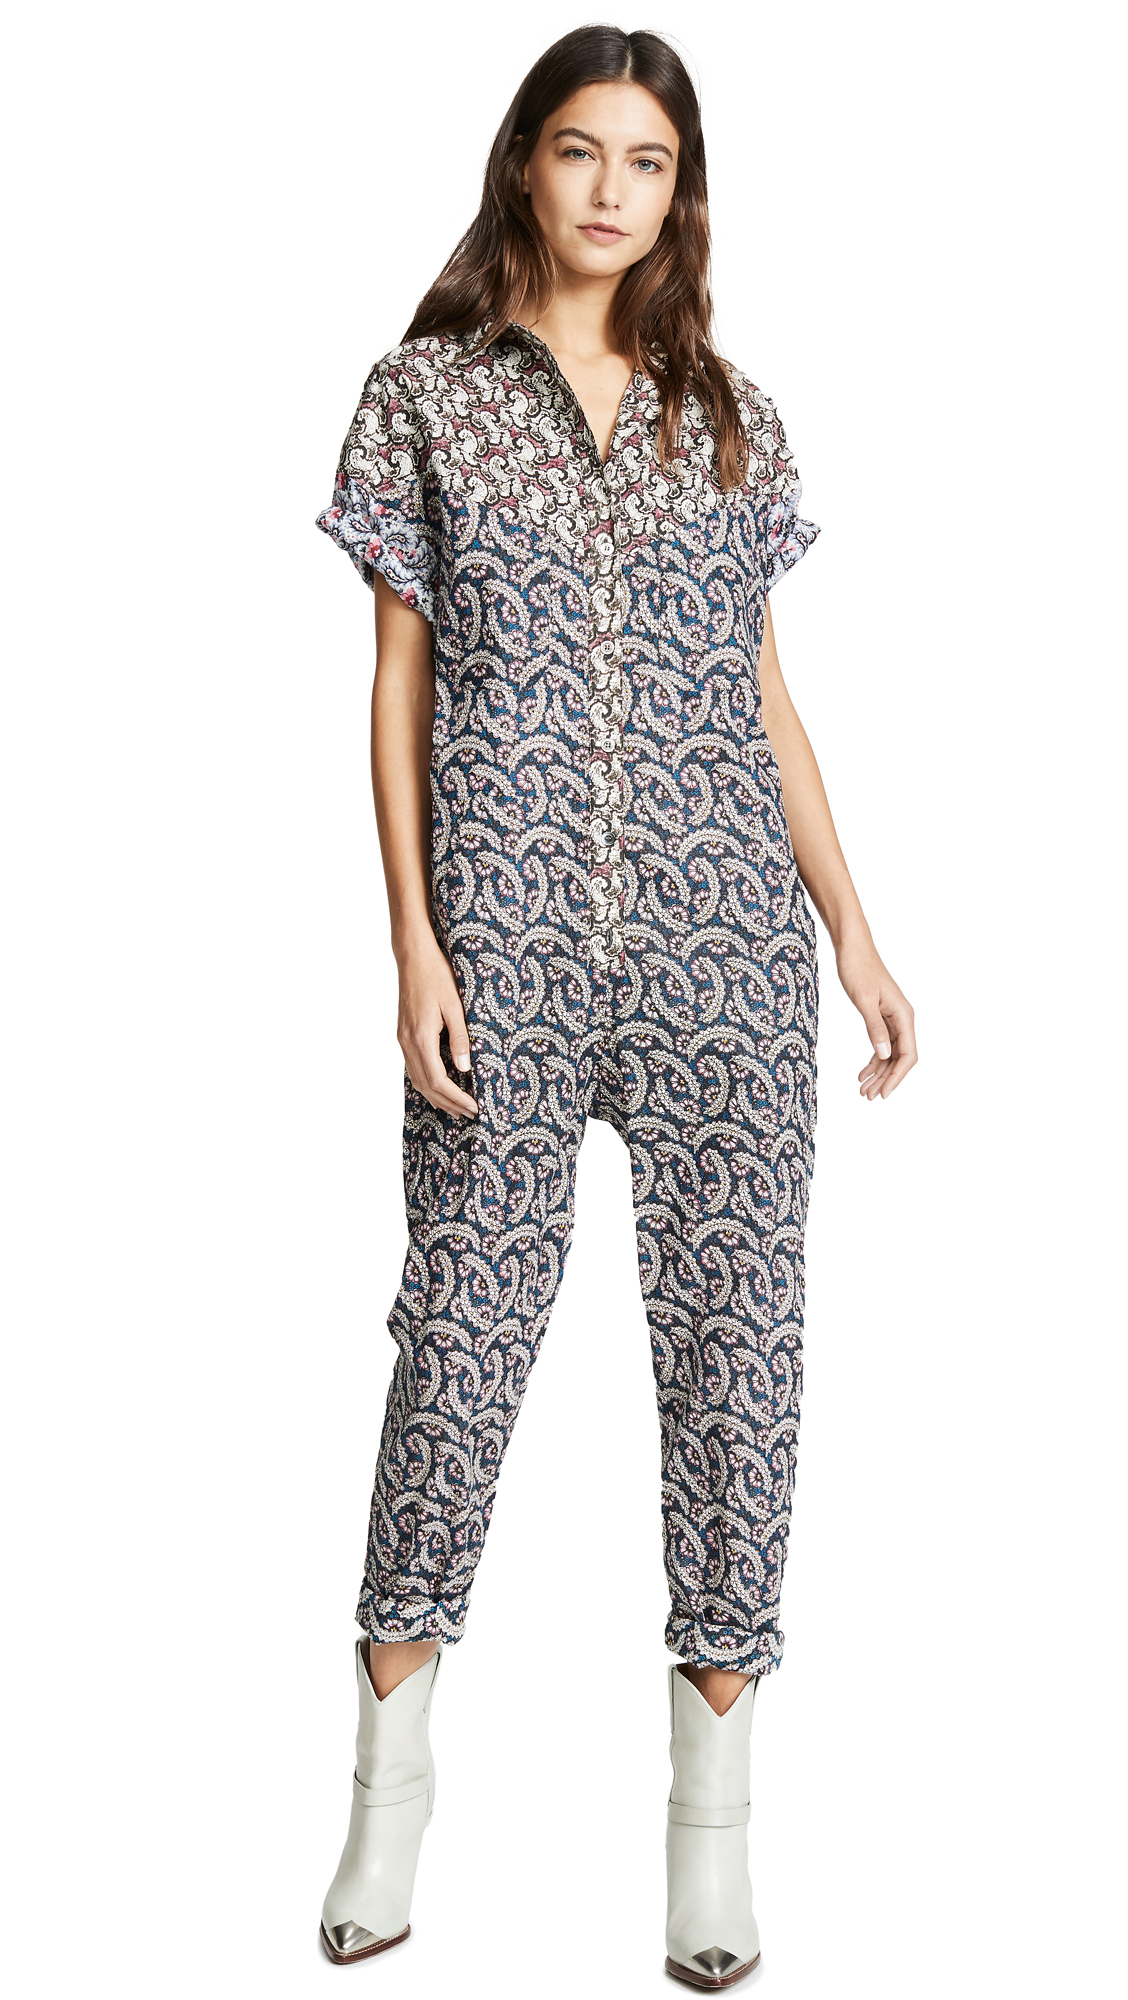 Isabel Marant Etoile Lindsie Jumpsuit In Blue,Paisley,Pink